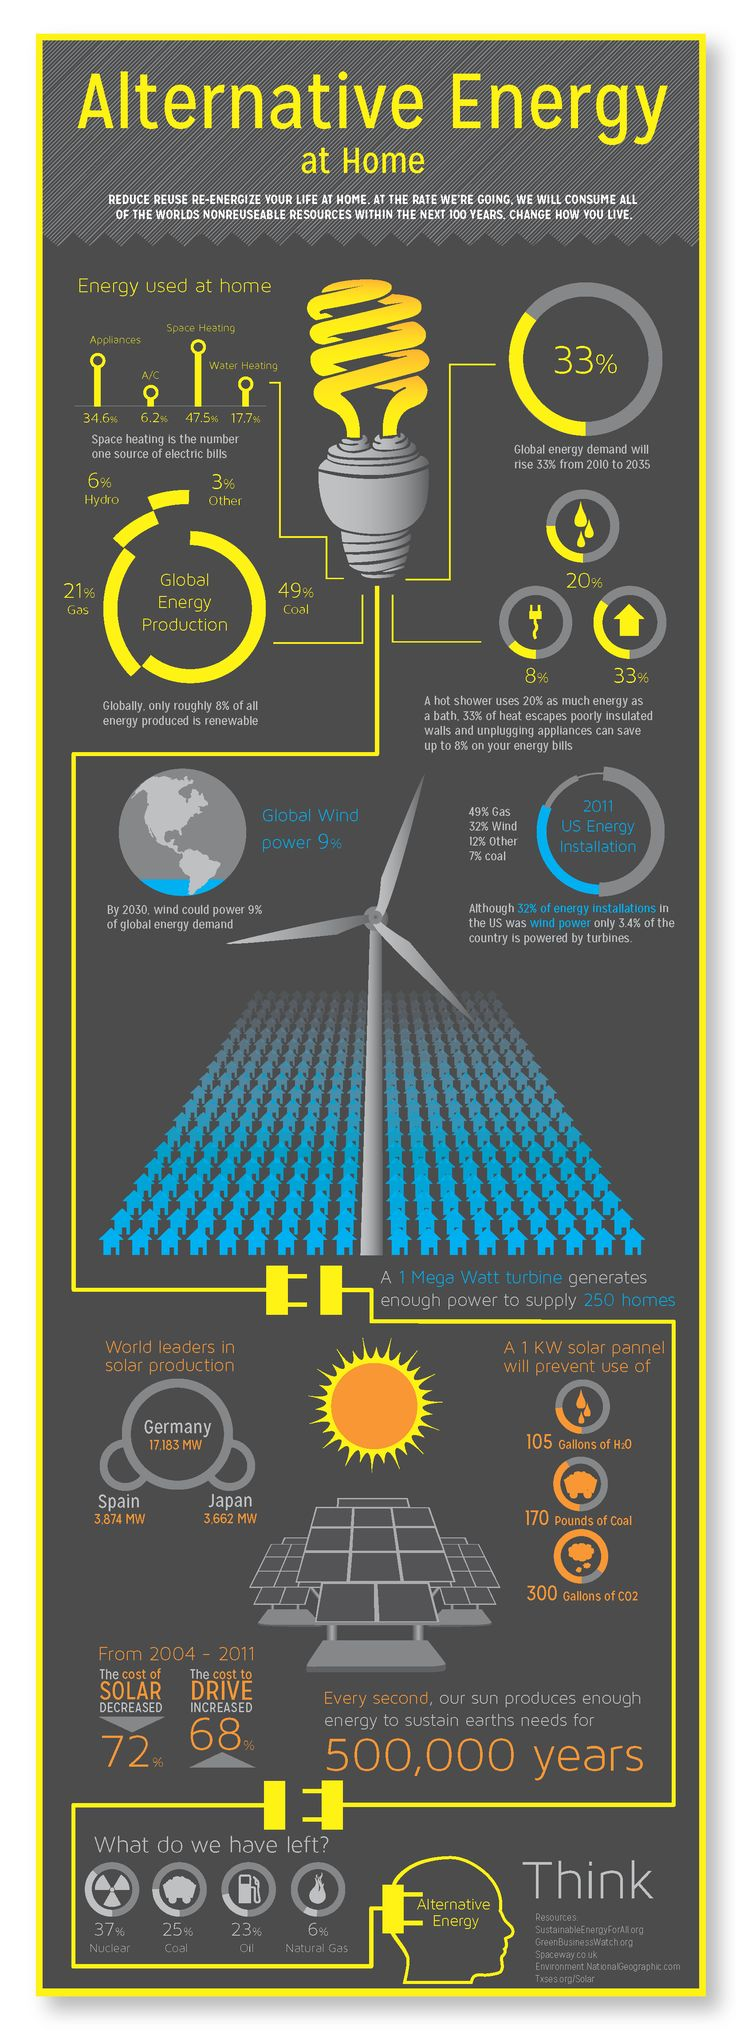 Alternative Energy Infographic  Www.viridian.com/sungolde                                                                                                                                                                                 More